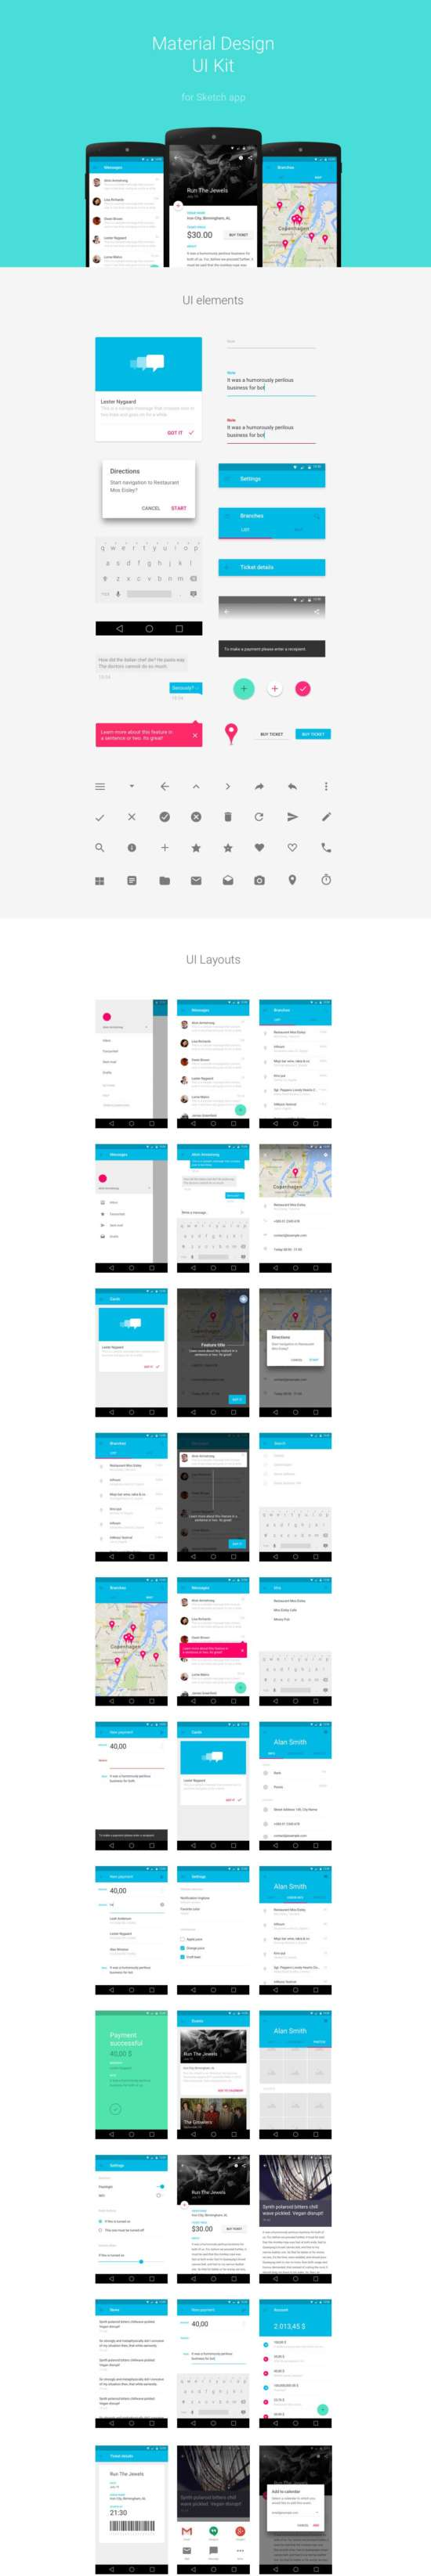 android_material_design_ui_kit